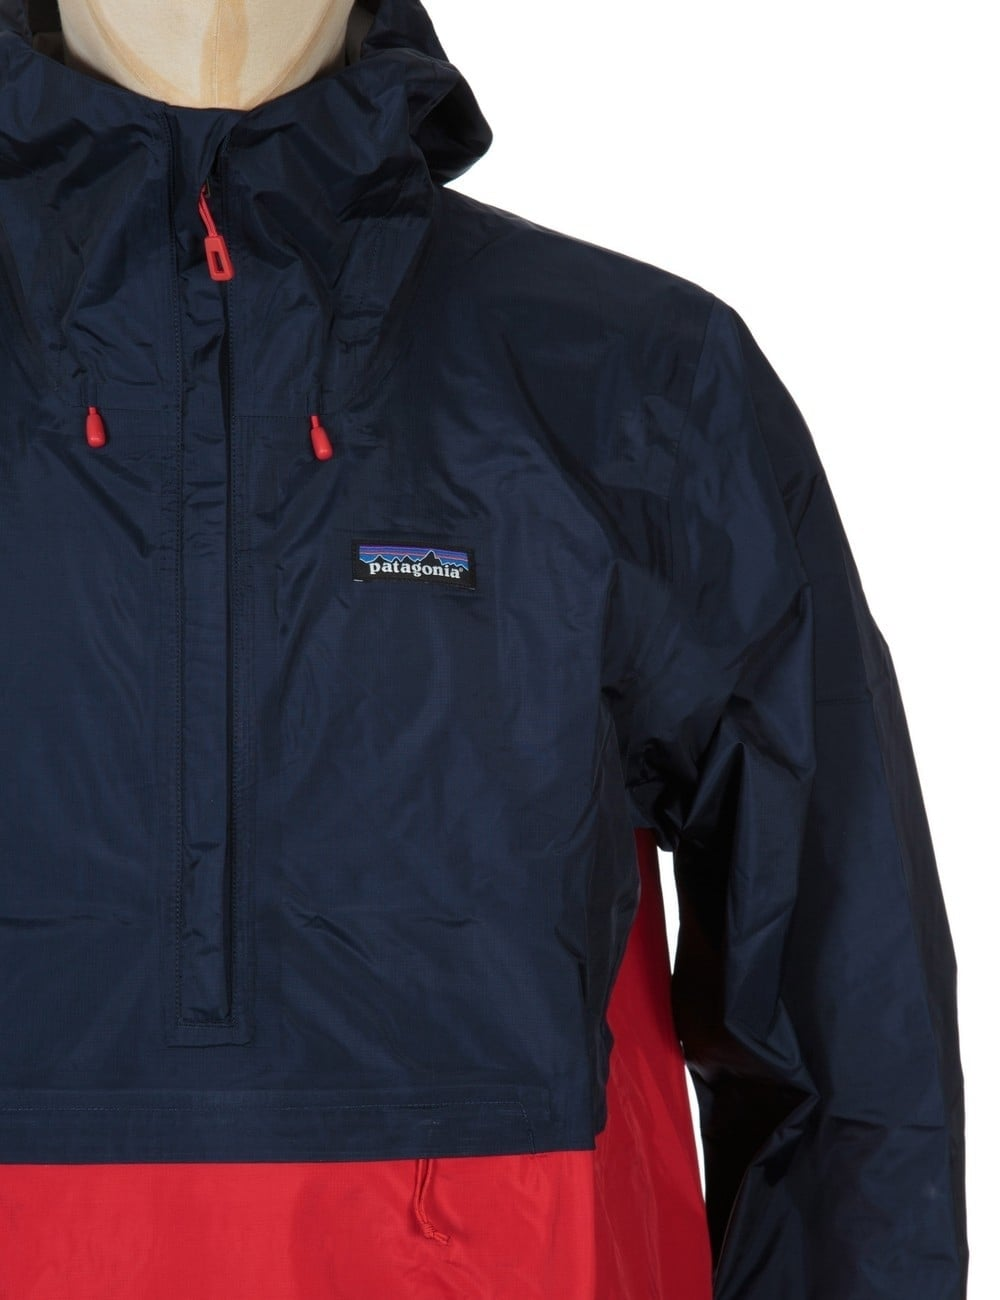 Patagonia Torrentshell Pullover Jacket - Navy Blue - Clothing from ...